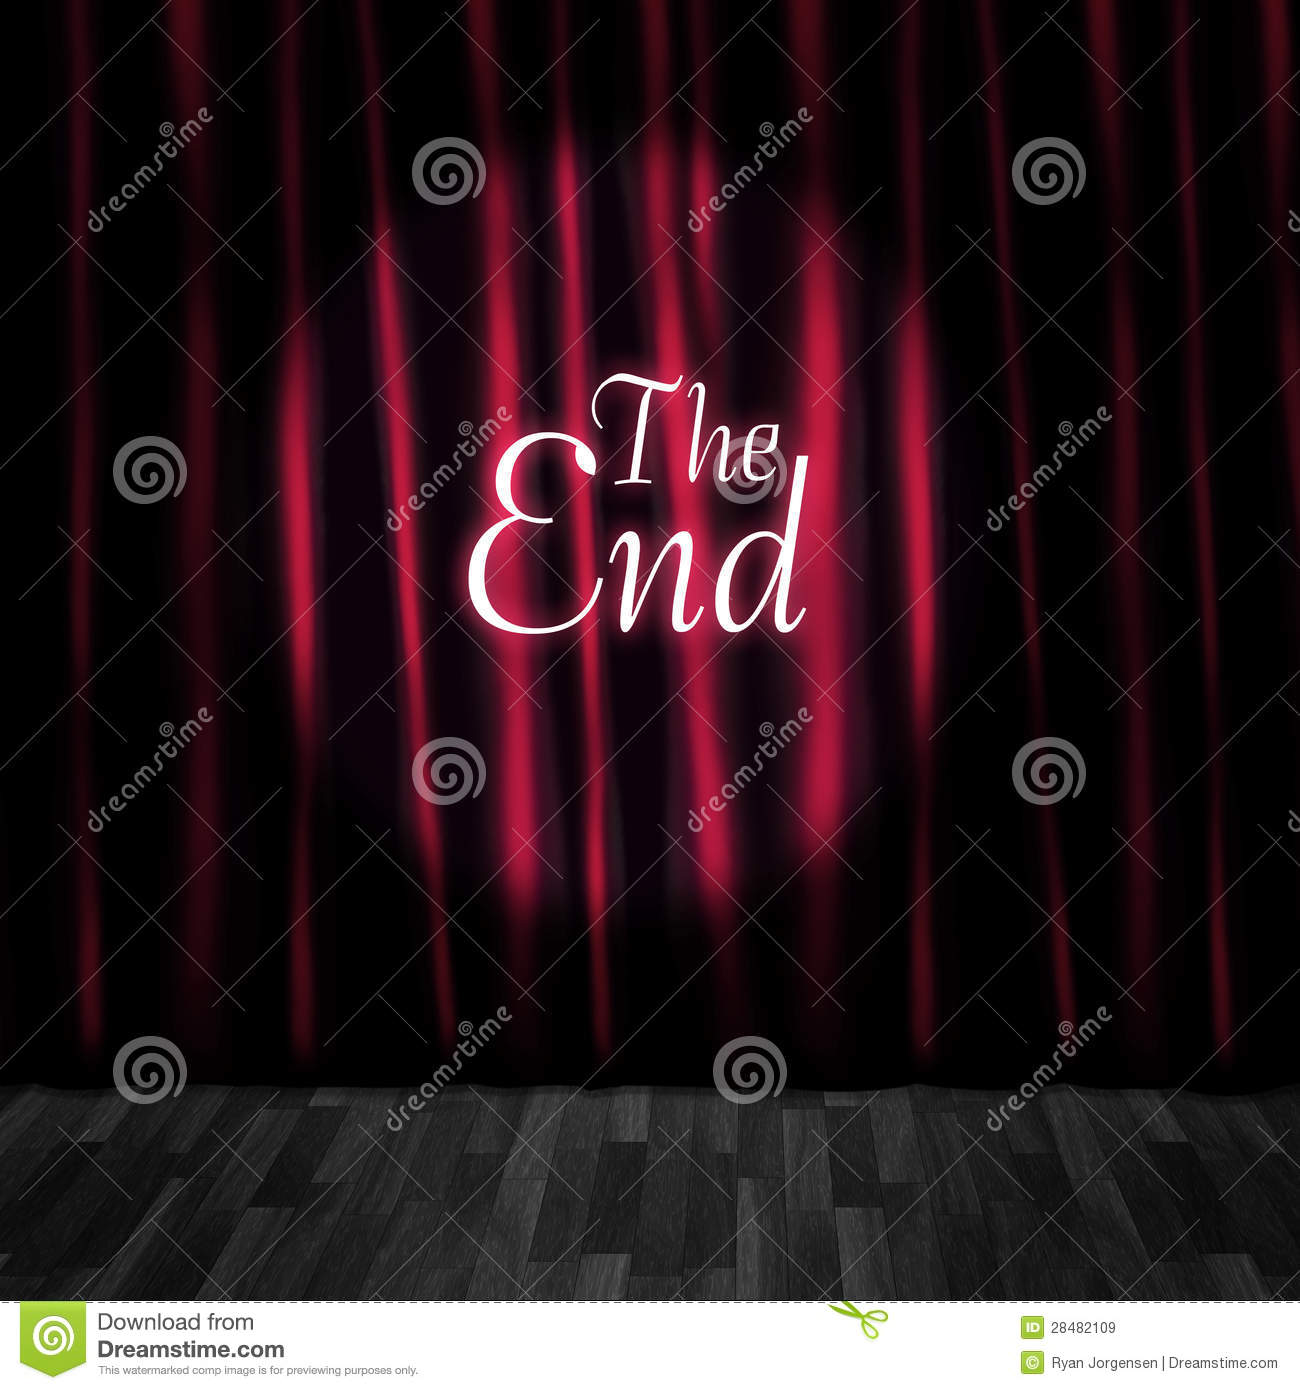 Closed Theatre Stage Curtains At Performance End Royalty Free Stock ...